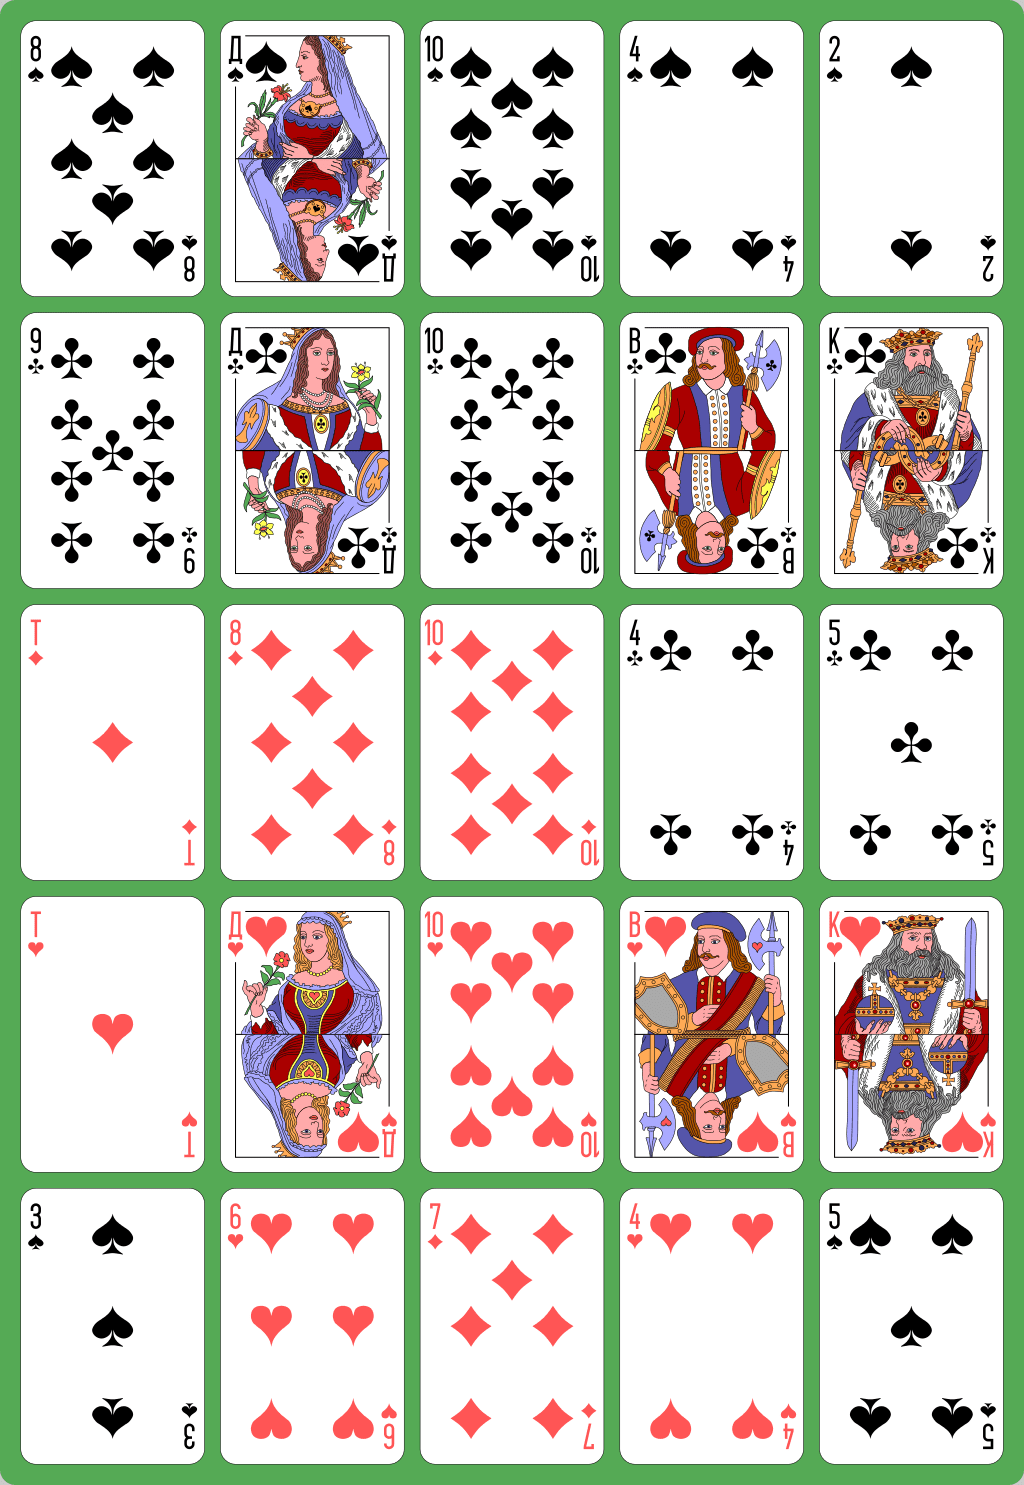 Solitaire Card games for one, Solitaire cards, Kings